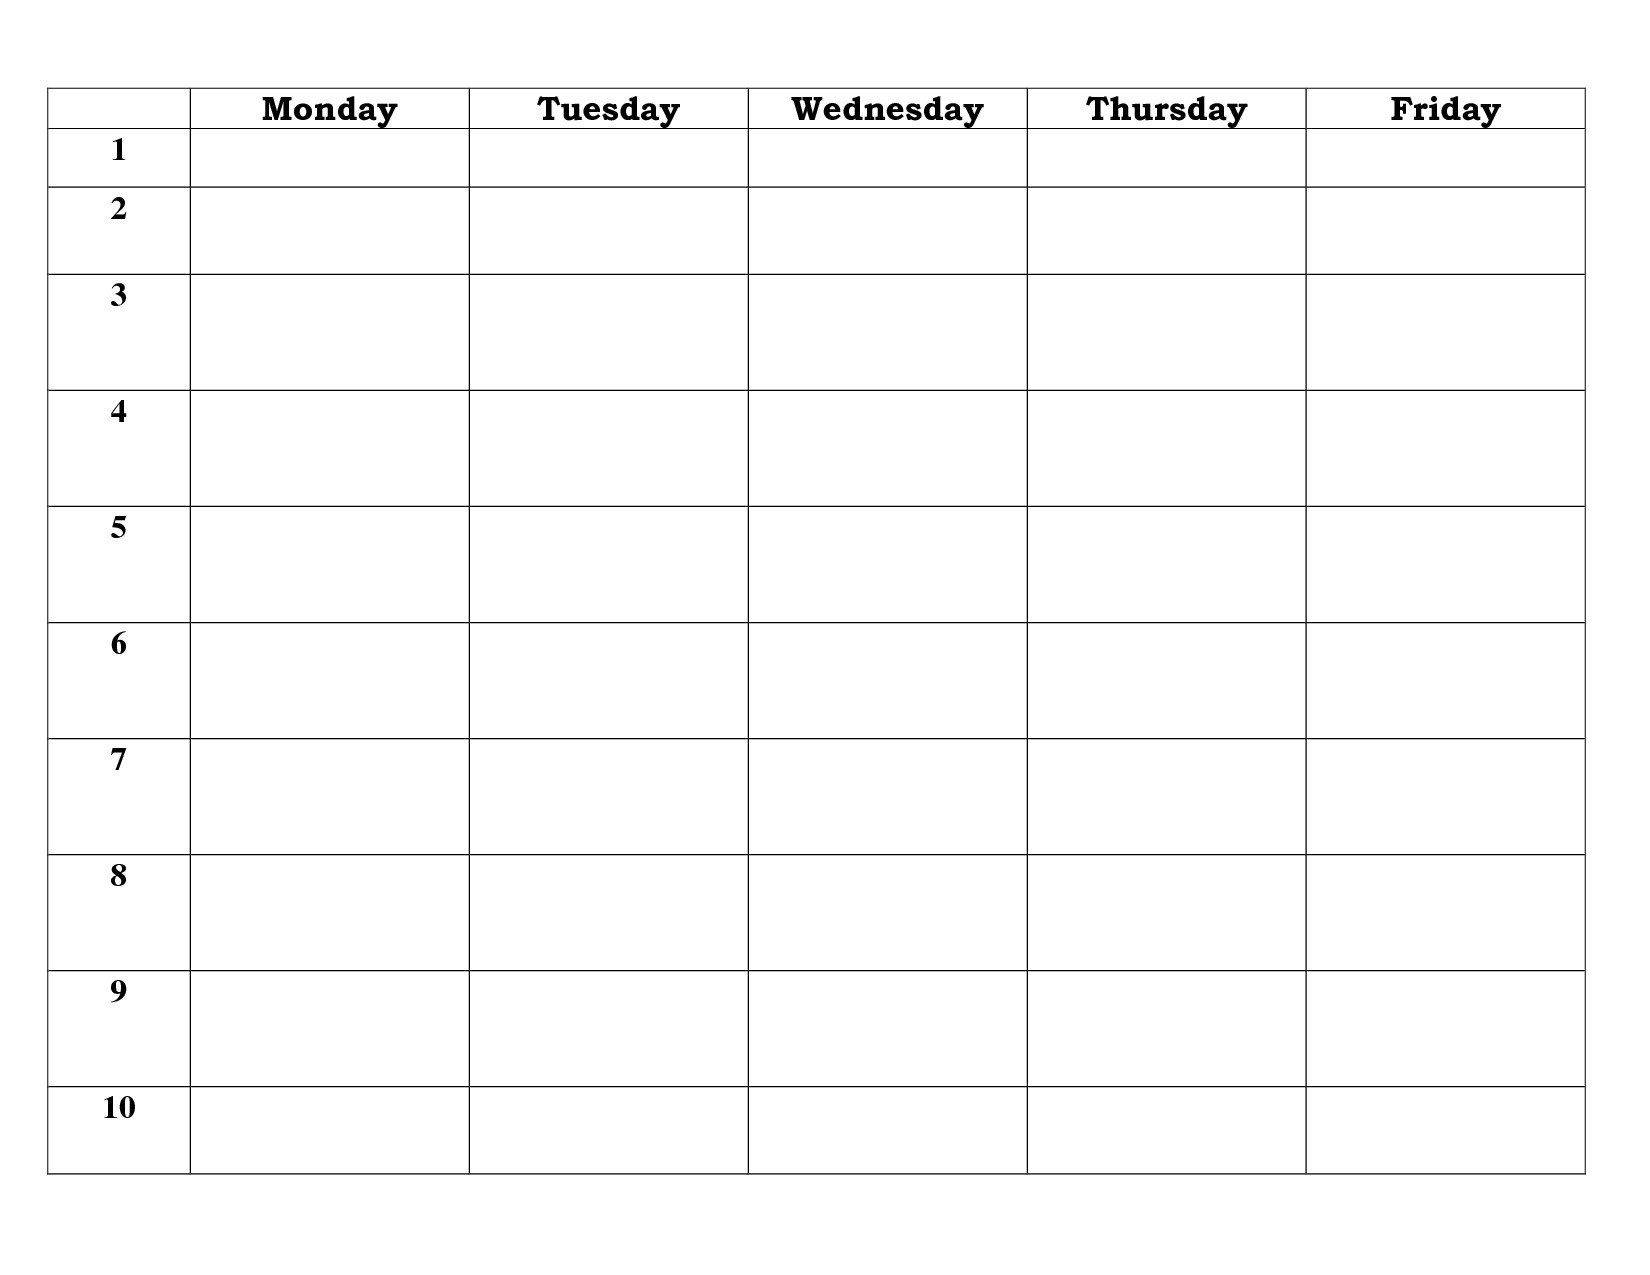 Make Your Own Calendar Free Blank Calendar Template 5 Day Week intended for Blank Calendar Template 5 Day